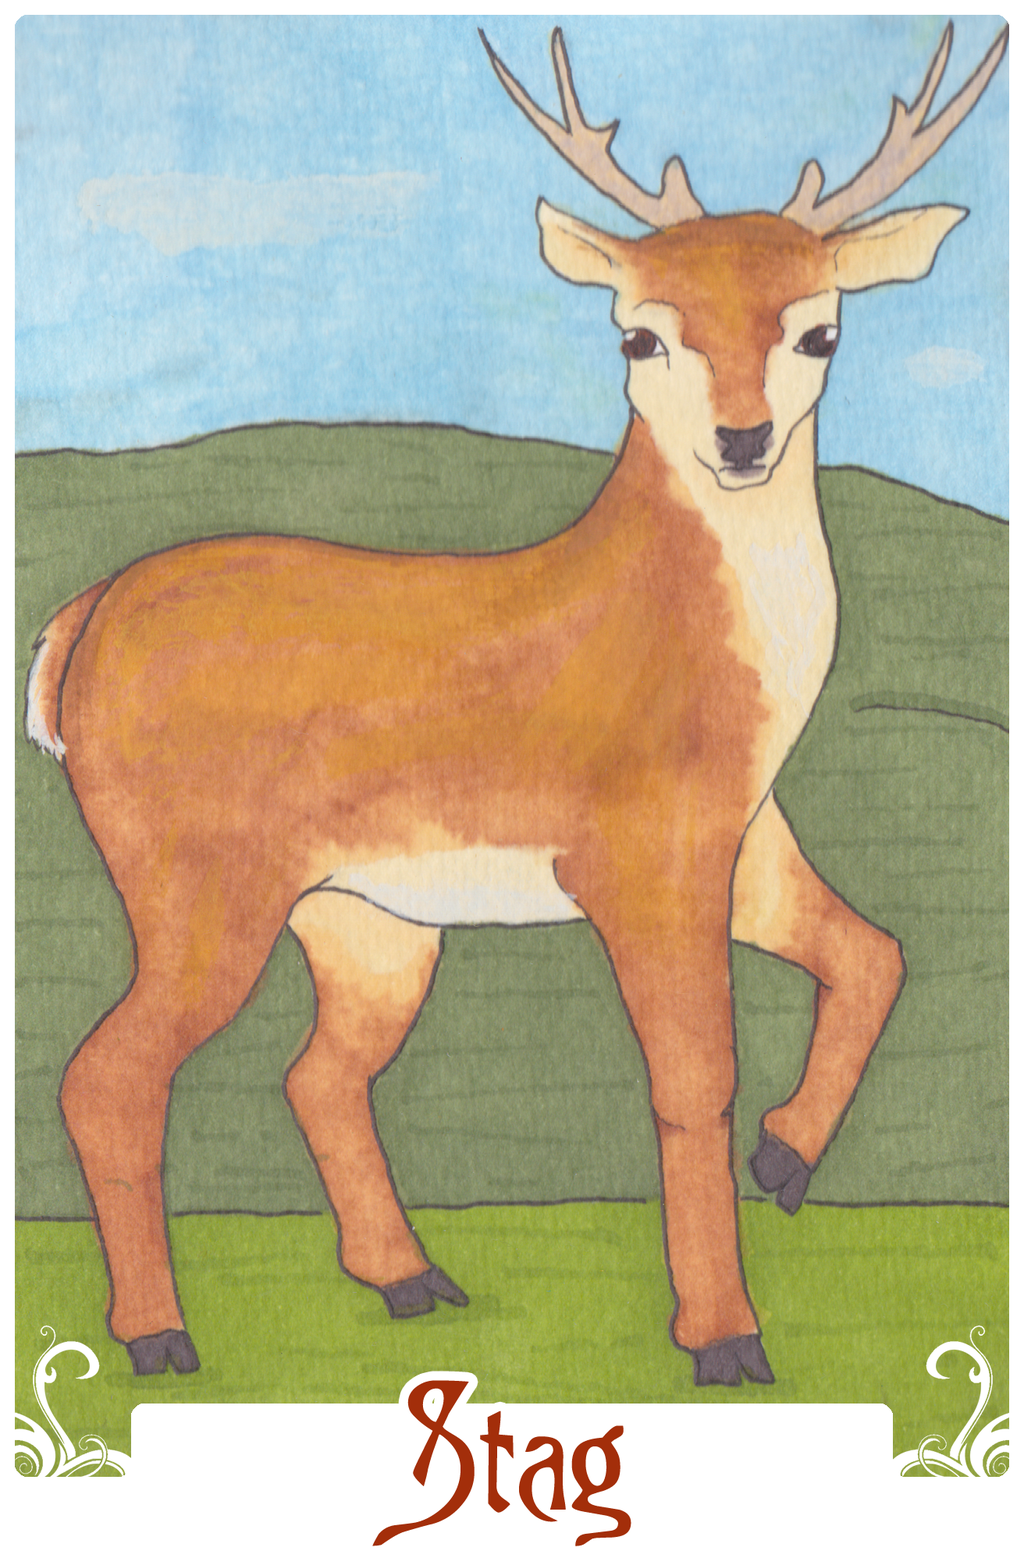 Stag (2014)